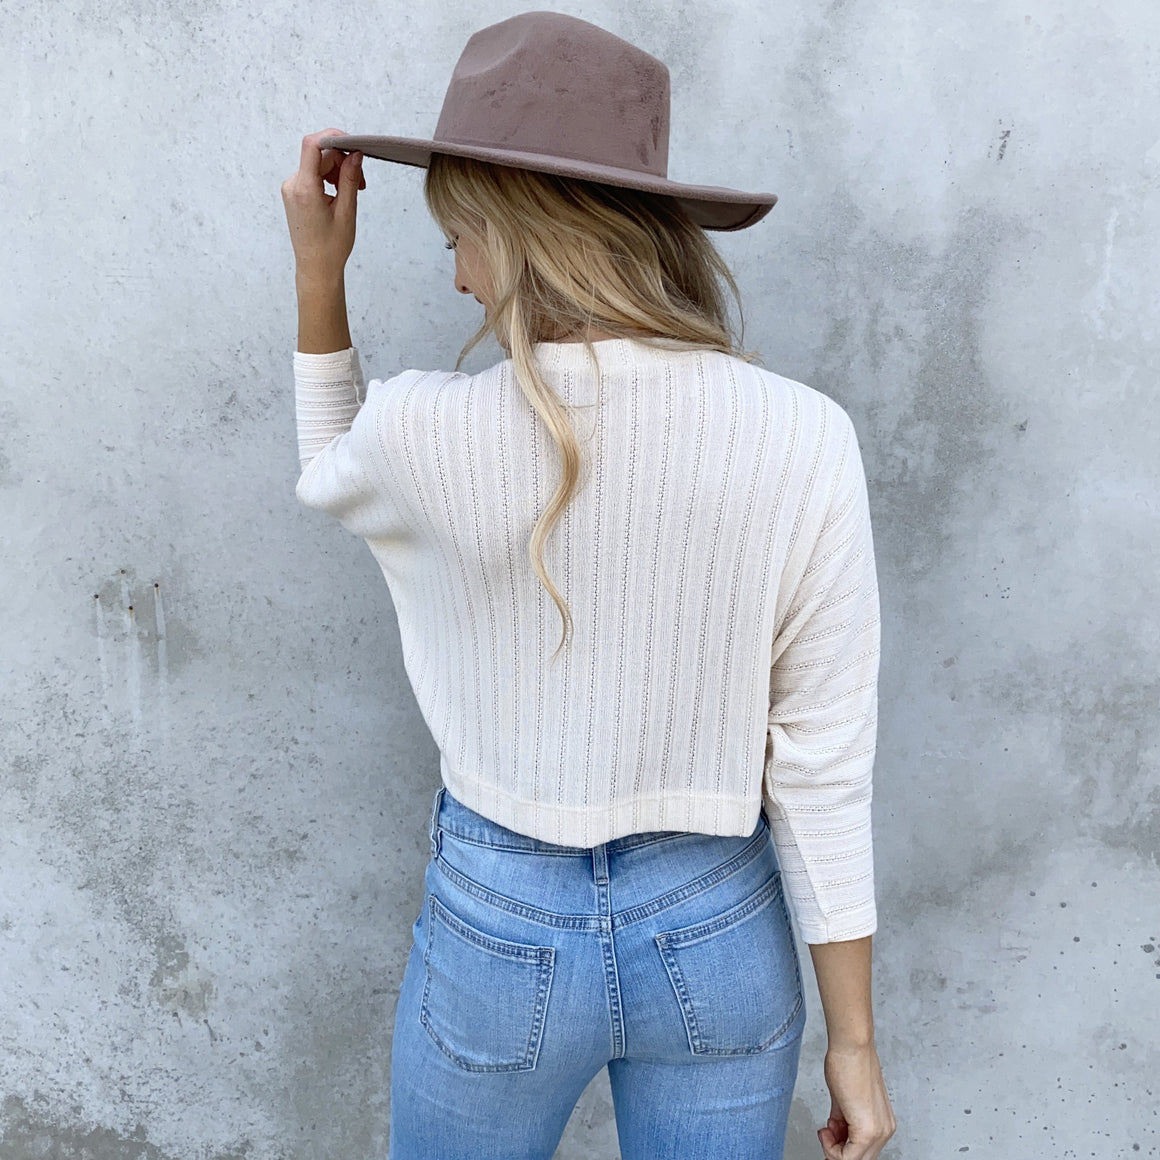 Daydream Knit Sweater Crop Top in Cream - Dainty Hooligan